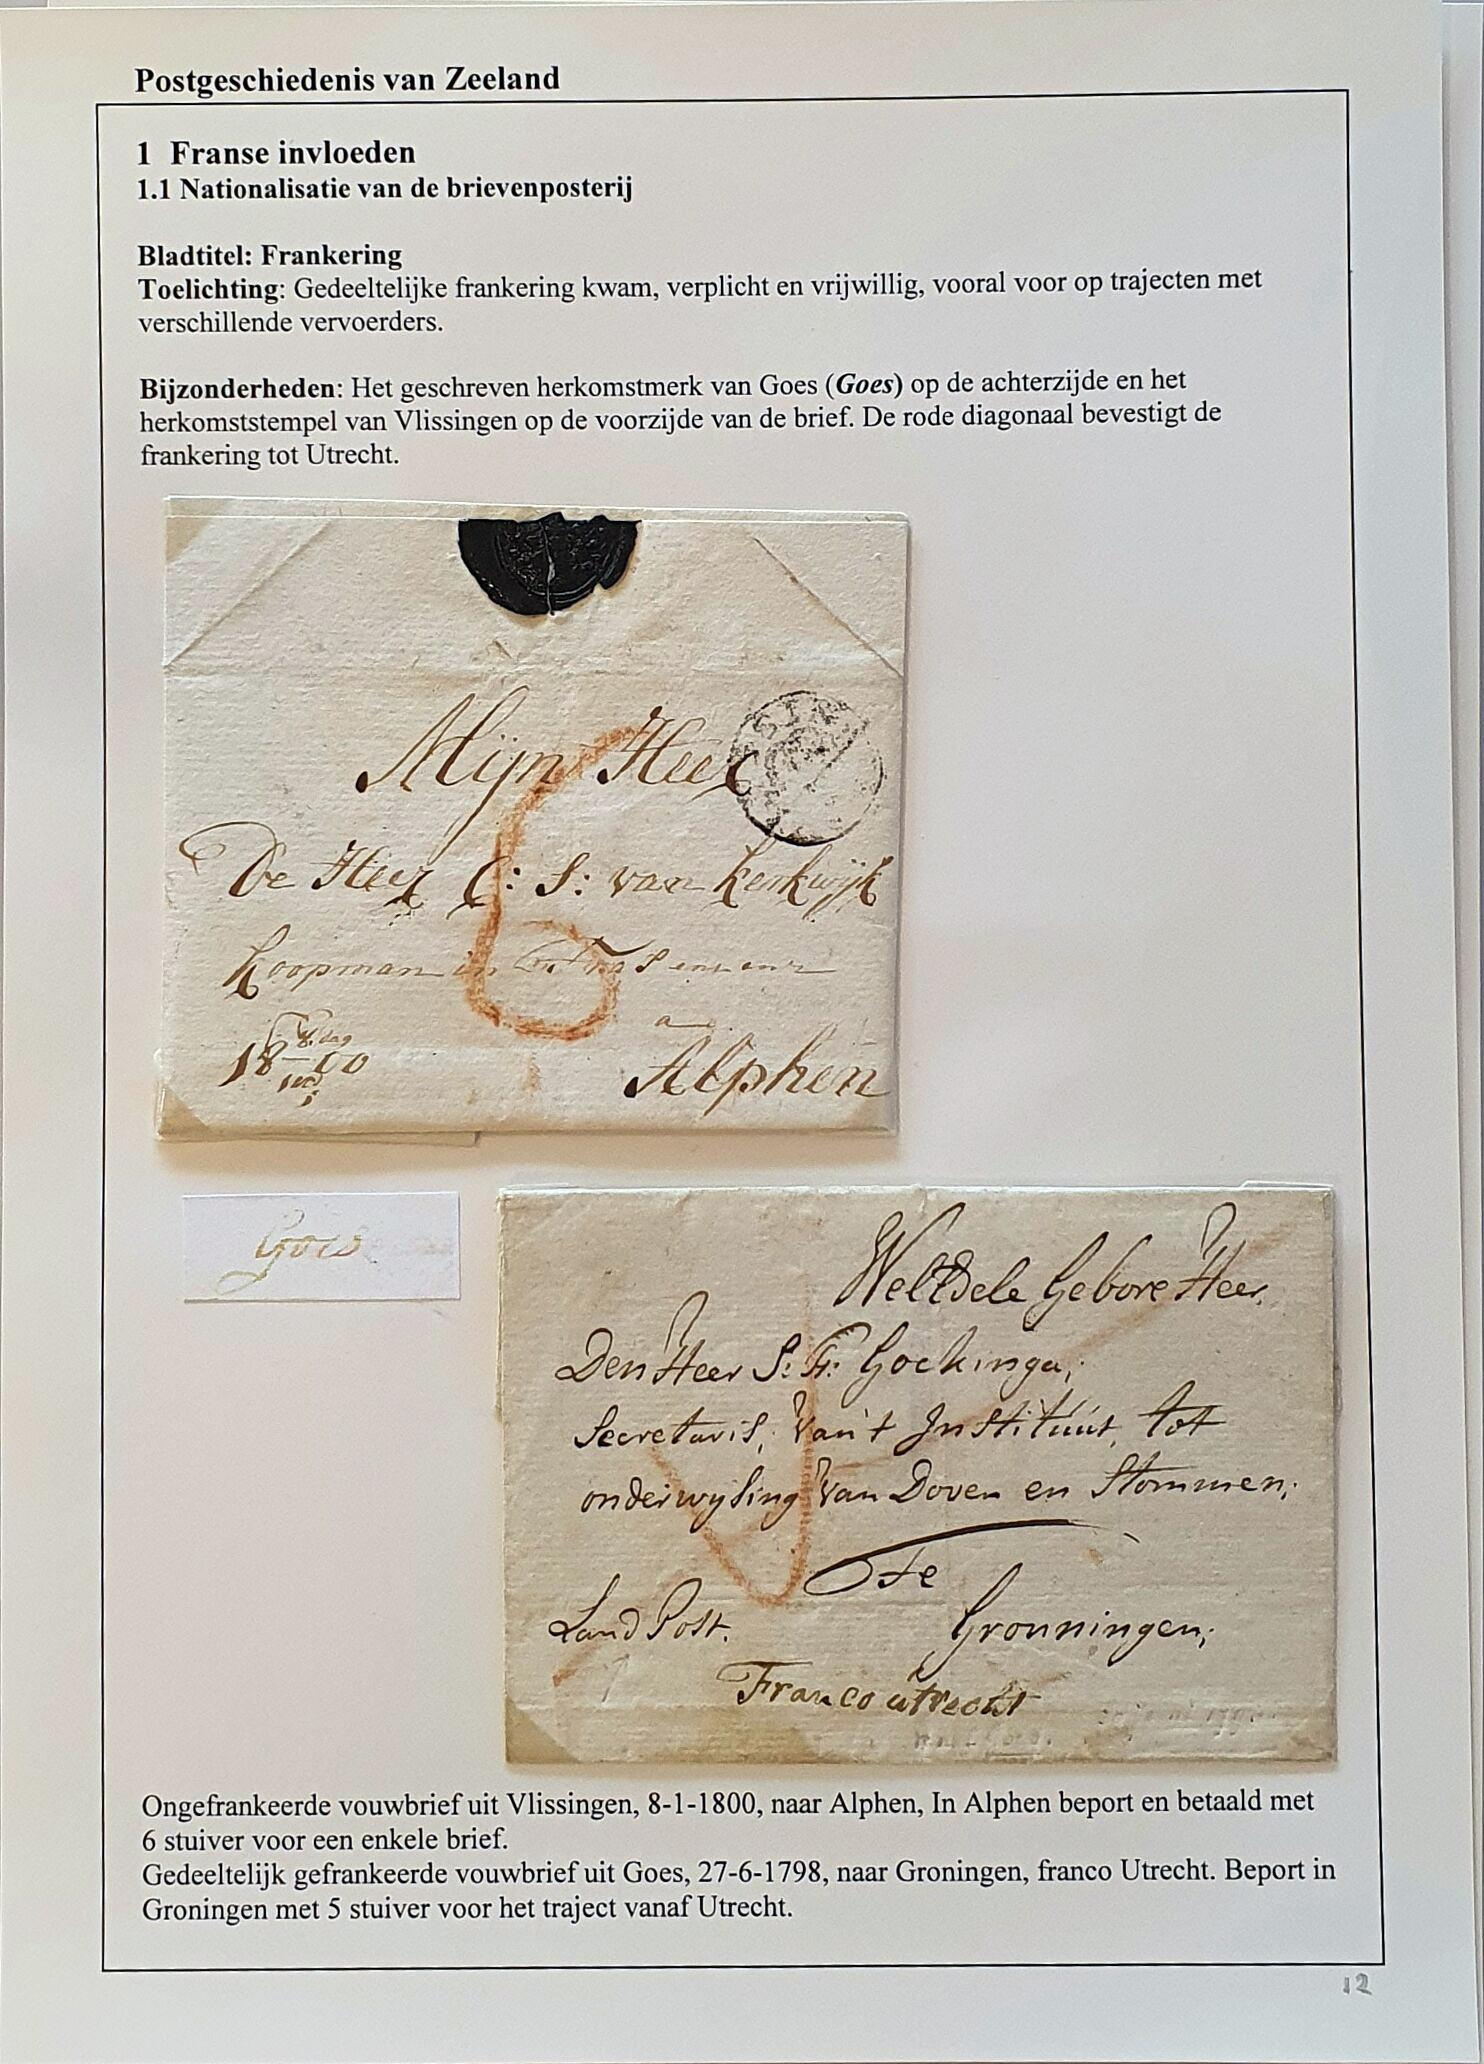 Lot 2319 - Netherlands and former colonies Netherlands -  Corinphila Veilingen Auction 250-253 - Day 3 - Netherlands and former colonies - Single lots & Picture postcards